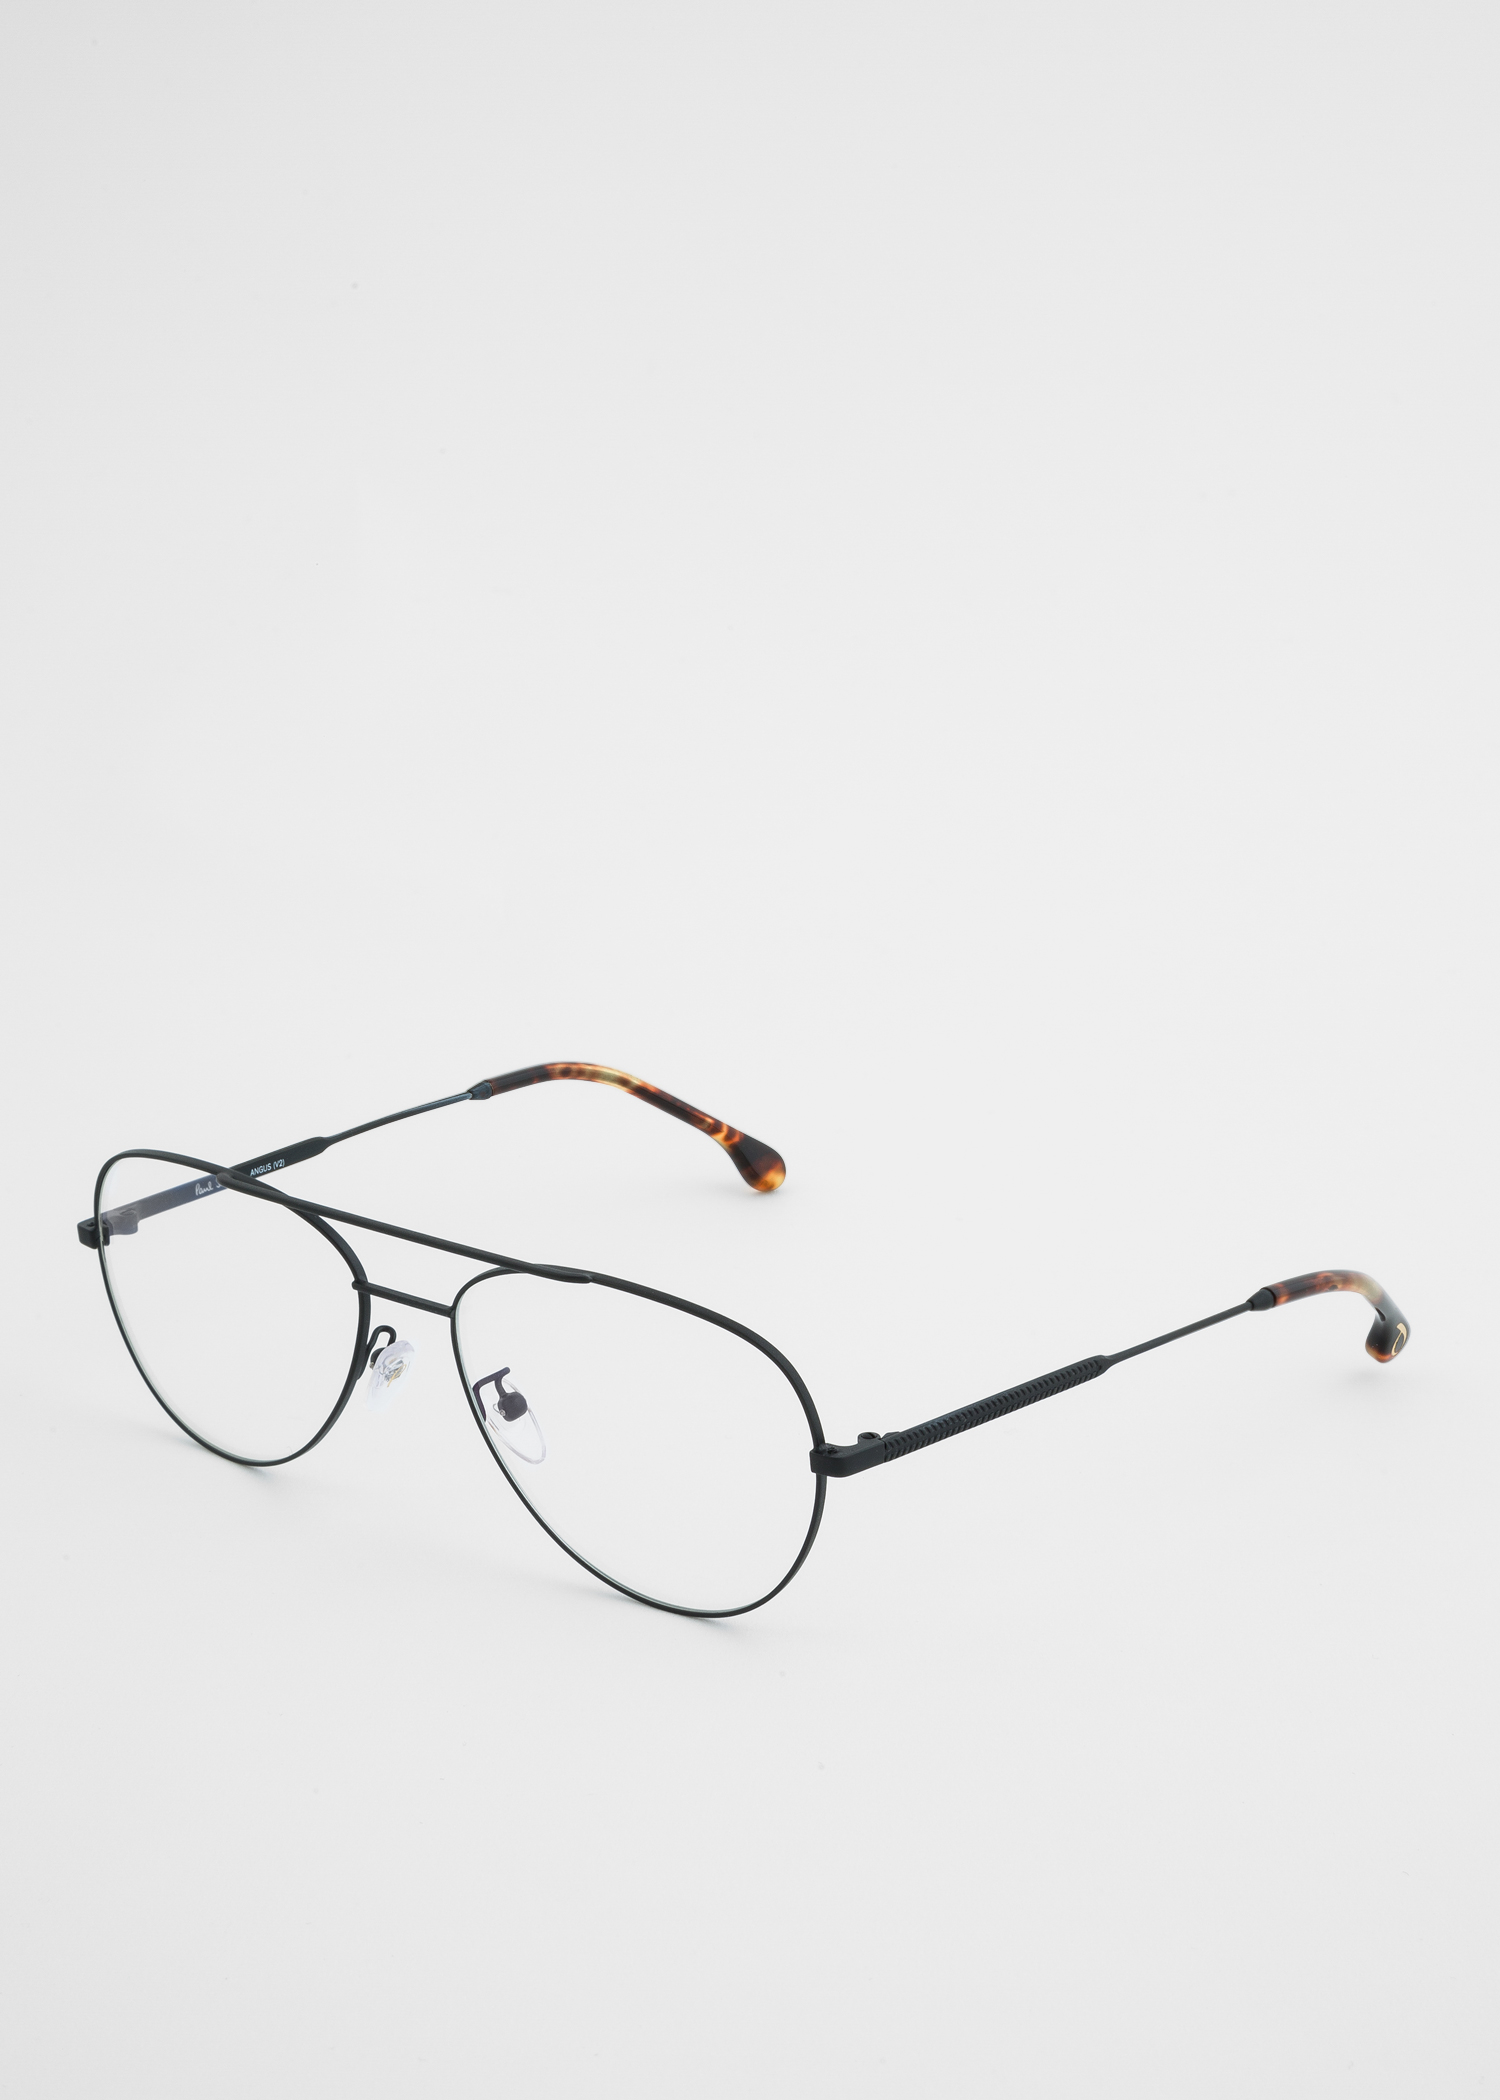 b7afa1e45a angled view - Paul Smith Large Matte Black And Honeycomb Tortoise  Angus   Spectacles Paul